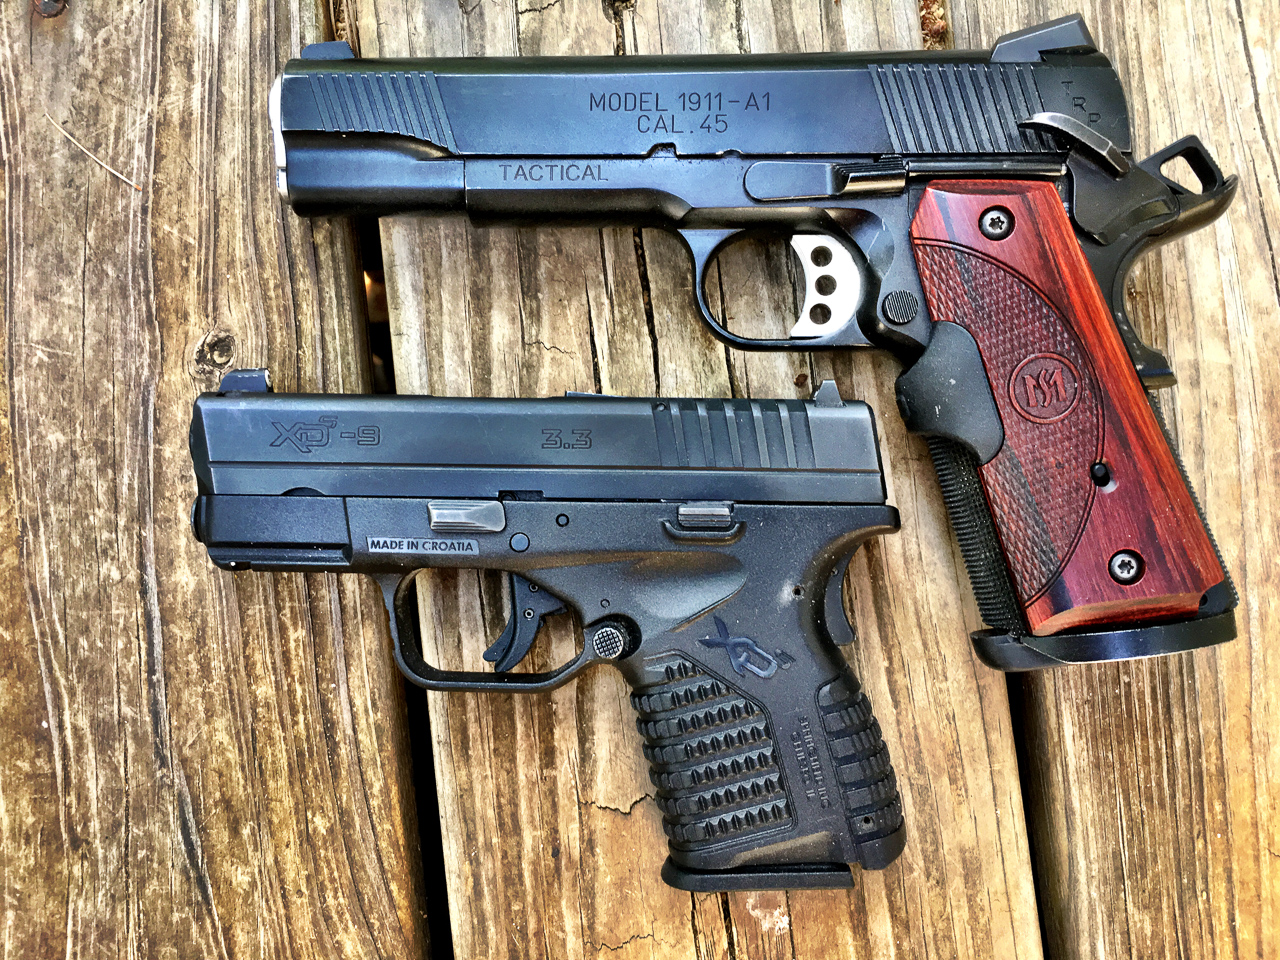 If you're willing to trade up to a larger physical size, you might be able to handle a larger caliber. To me, the 1911 .45 ACP and Springfield Armory XD-S 9mm don't feel all that different in terms of recoil.